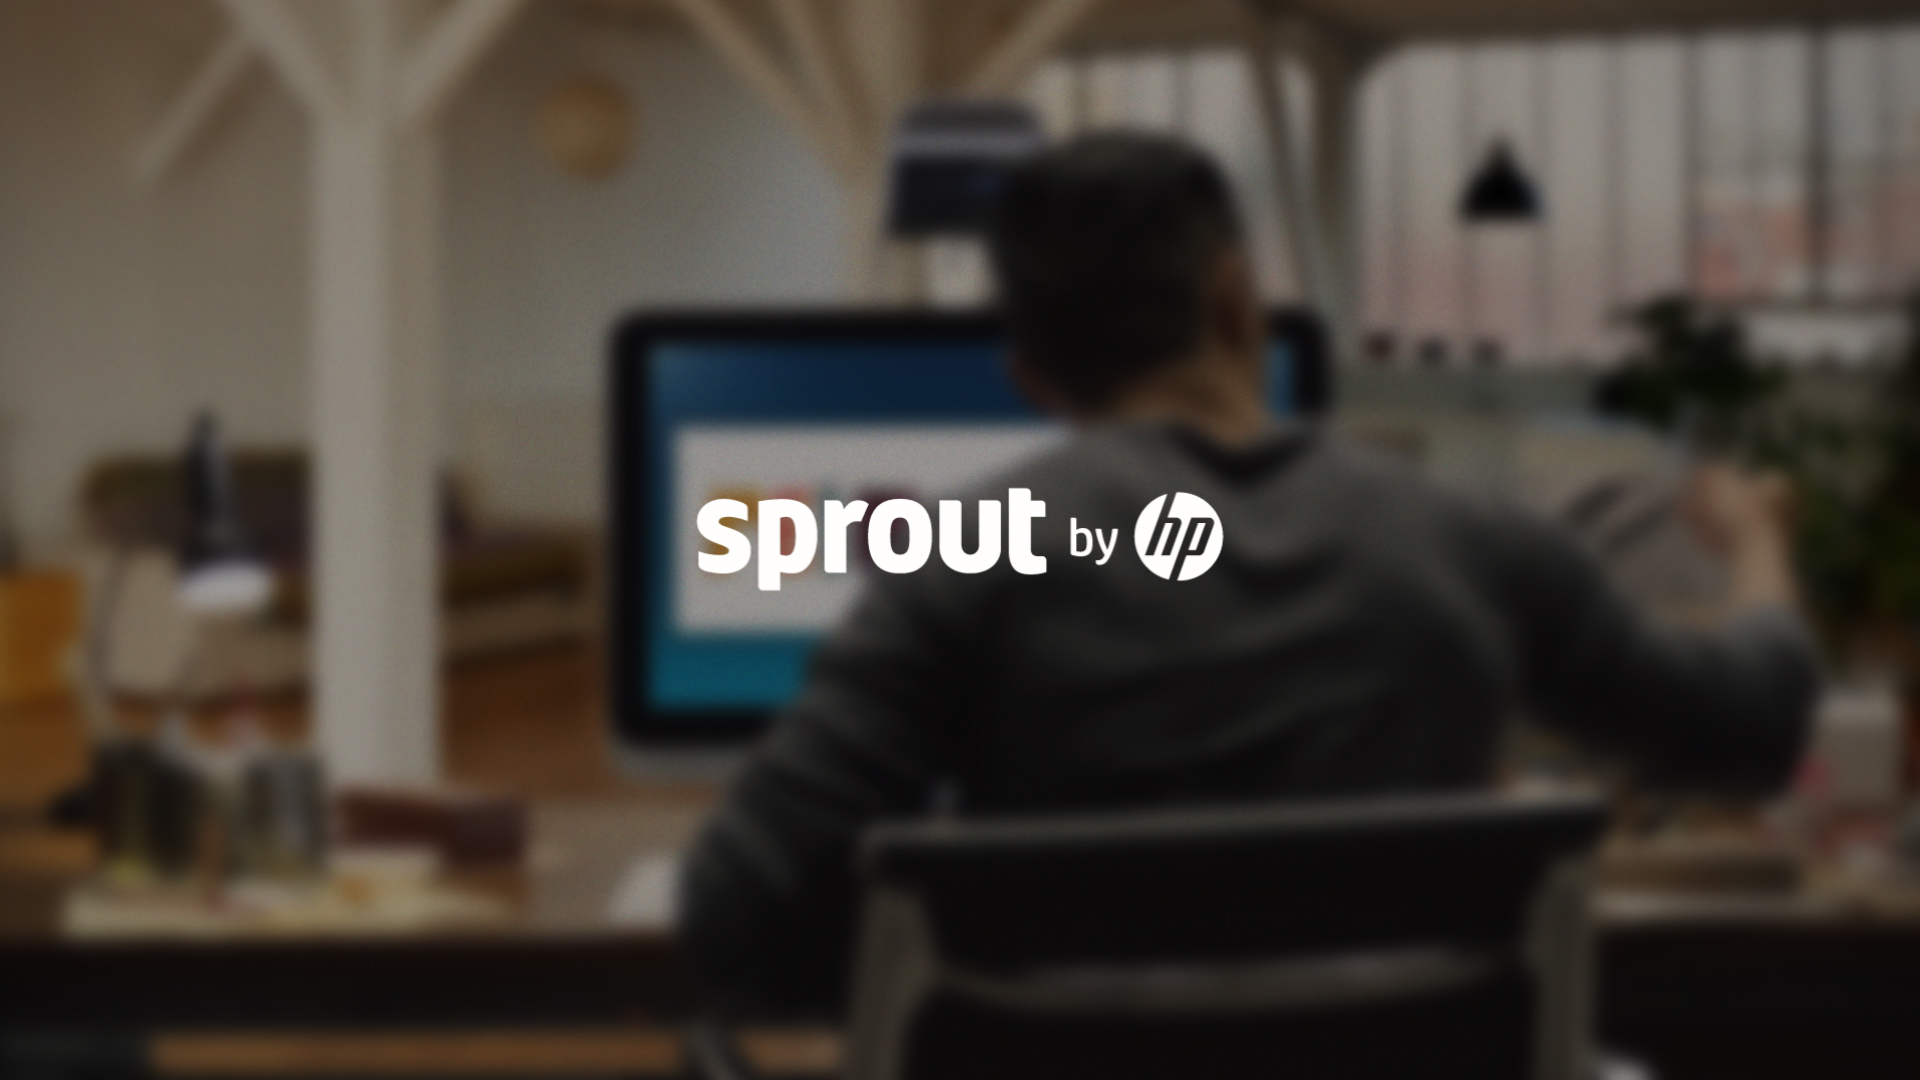 HP_SPROUT_GS_v01 (0.01.43.20).jpg